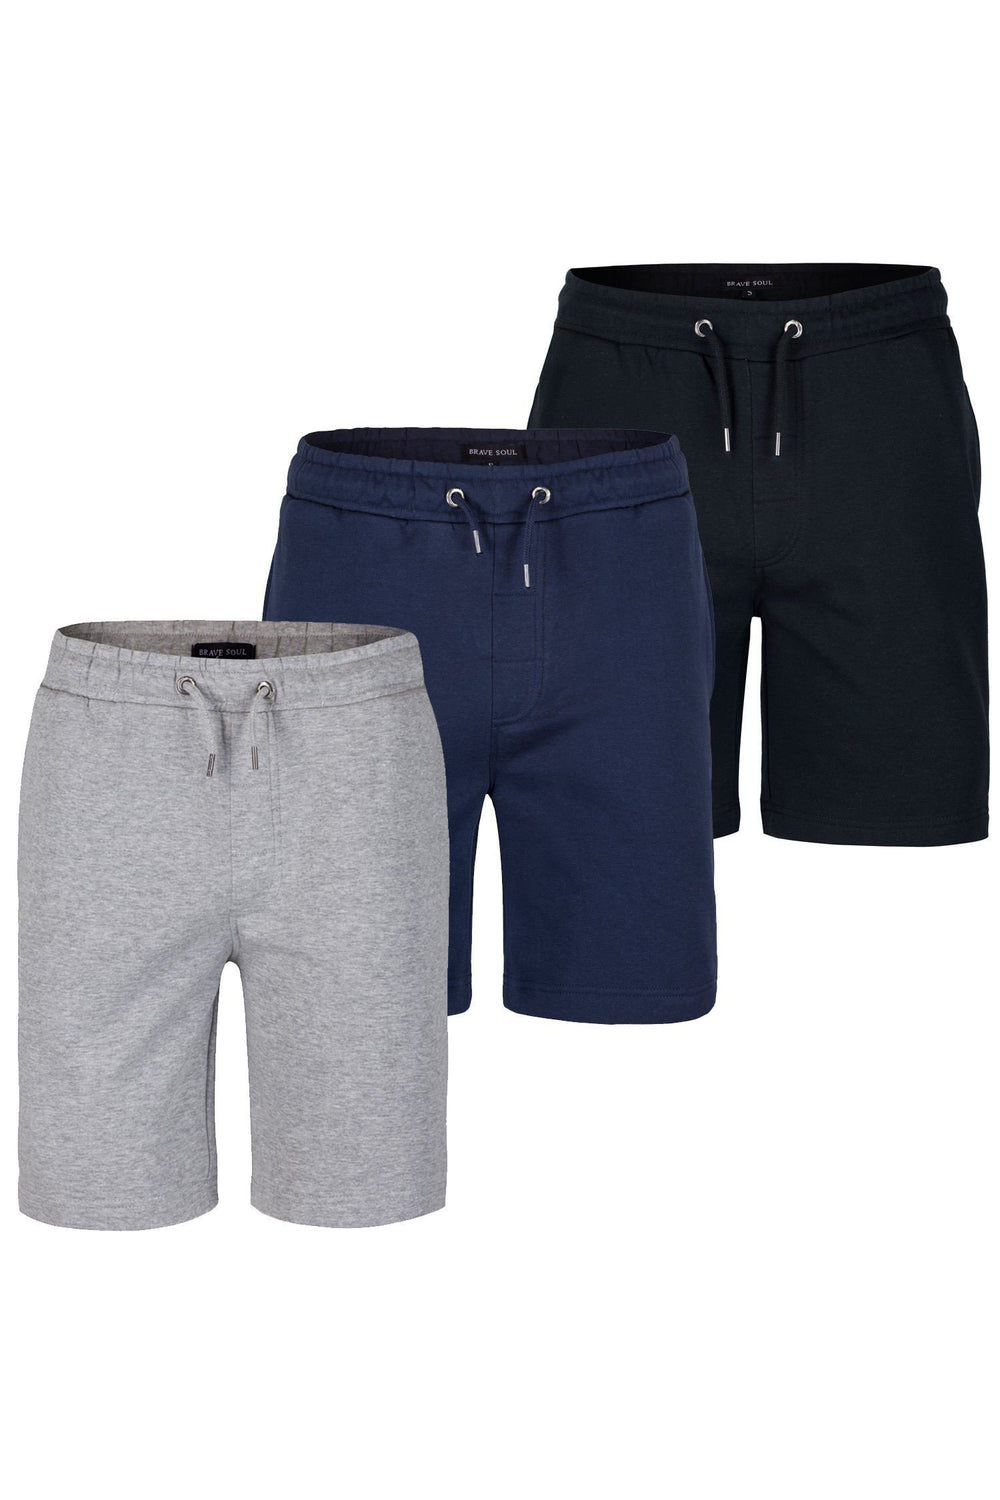 Shorts - YOLC. Sweat Shorts Navy